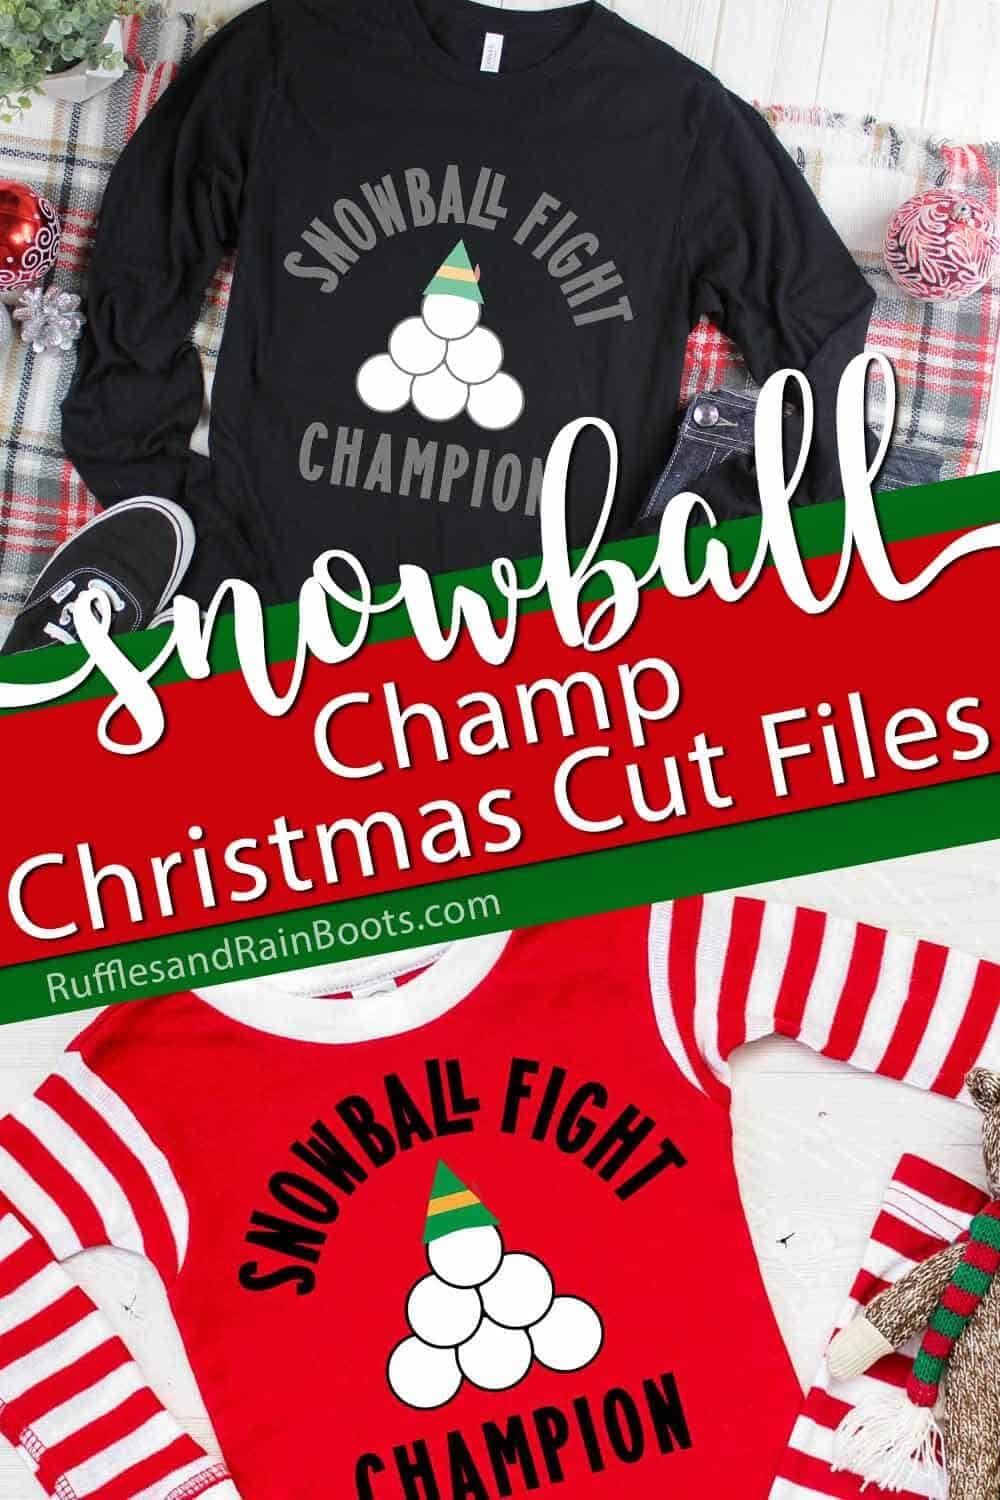 photo collage of snowball fight champion free Christmas cut file set with text which reads snowball champ christmas cut files